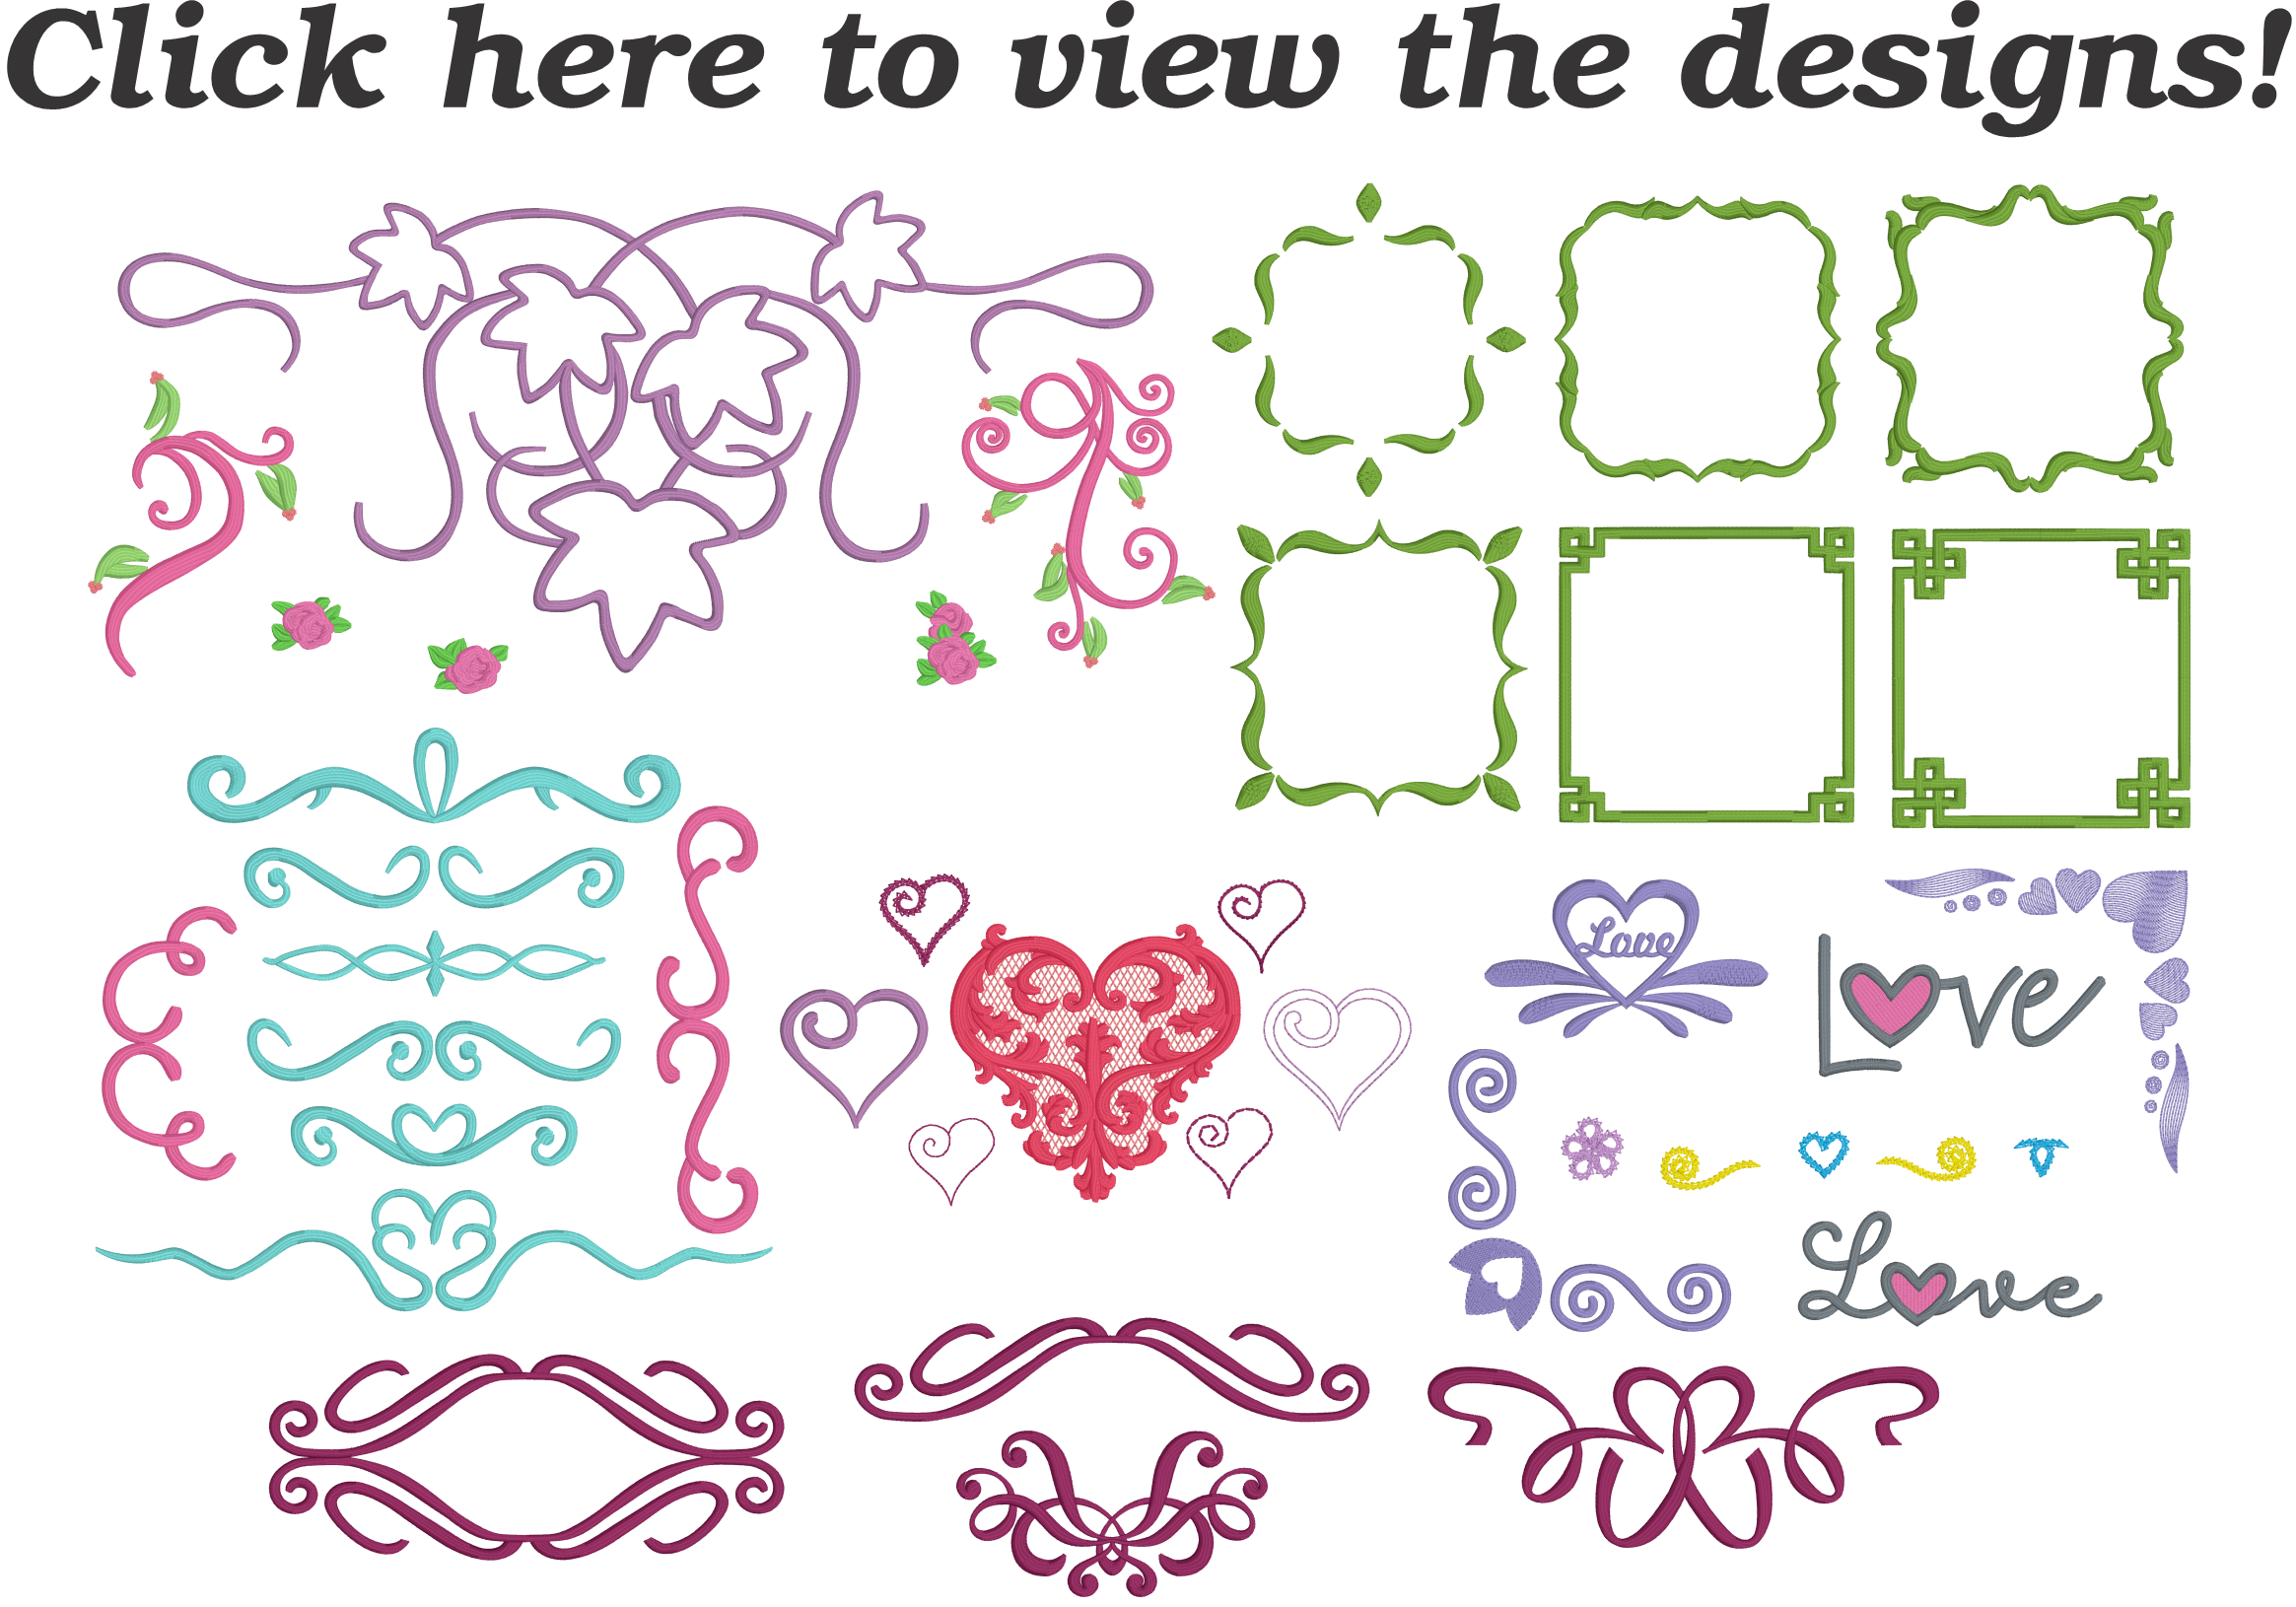 Sheet showing all of the romantic embroidery designs included in the Embrilliance Embroidery Software Romance Collection 1